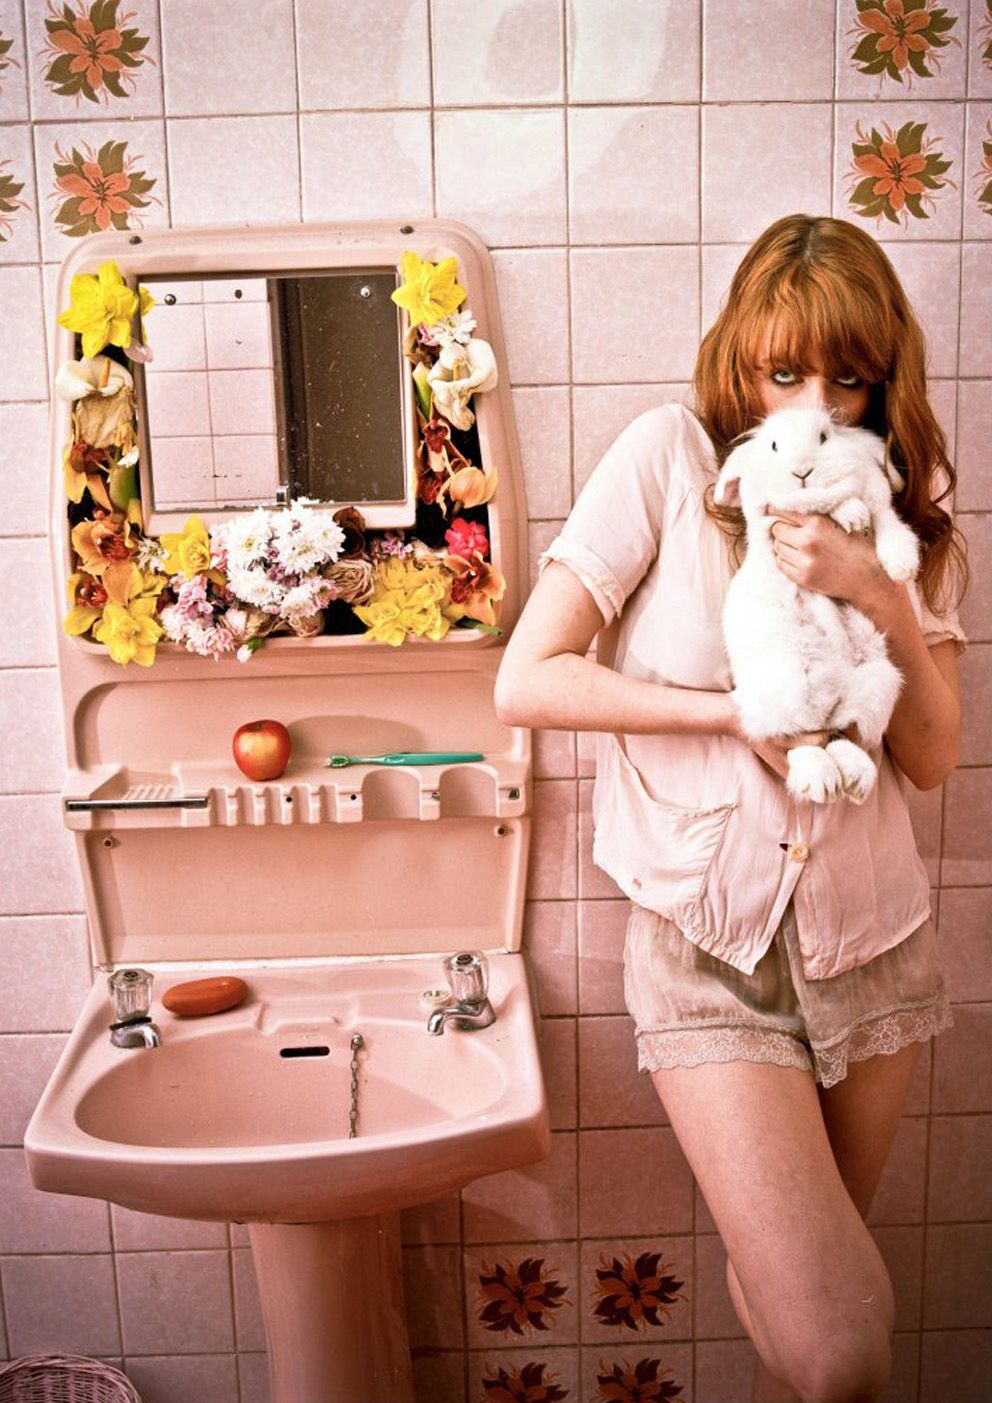 florence welch lapin salle de bain fille salle de bain pinterest florence welch. Black Bedroom Furniture Sets. Home Design Ideas